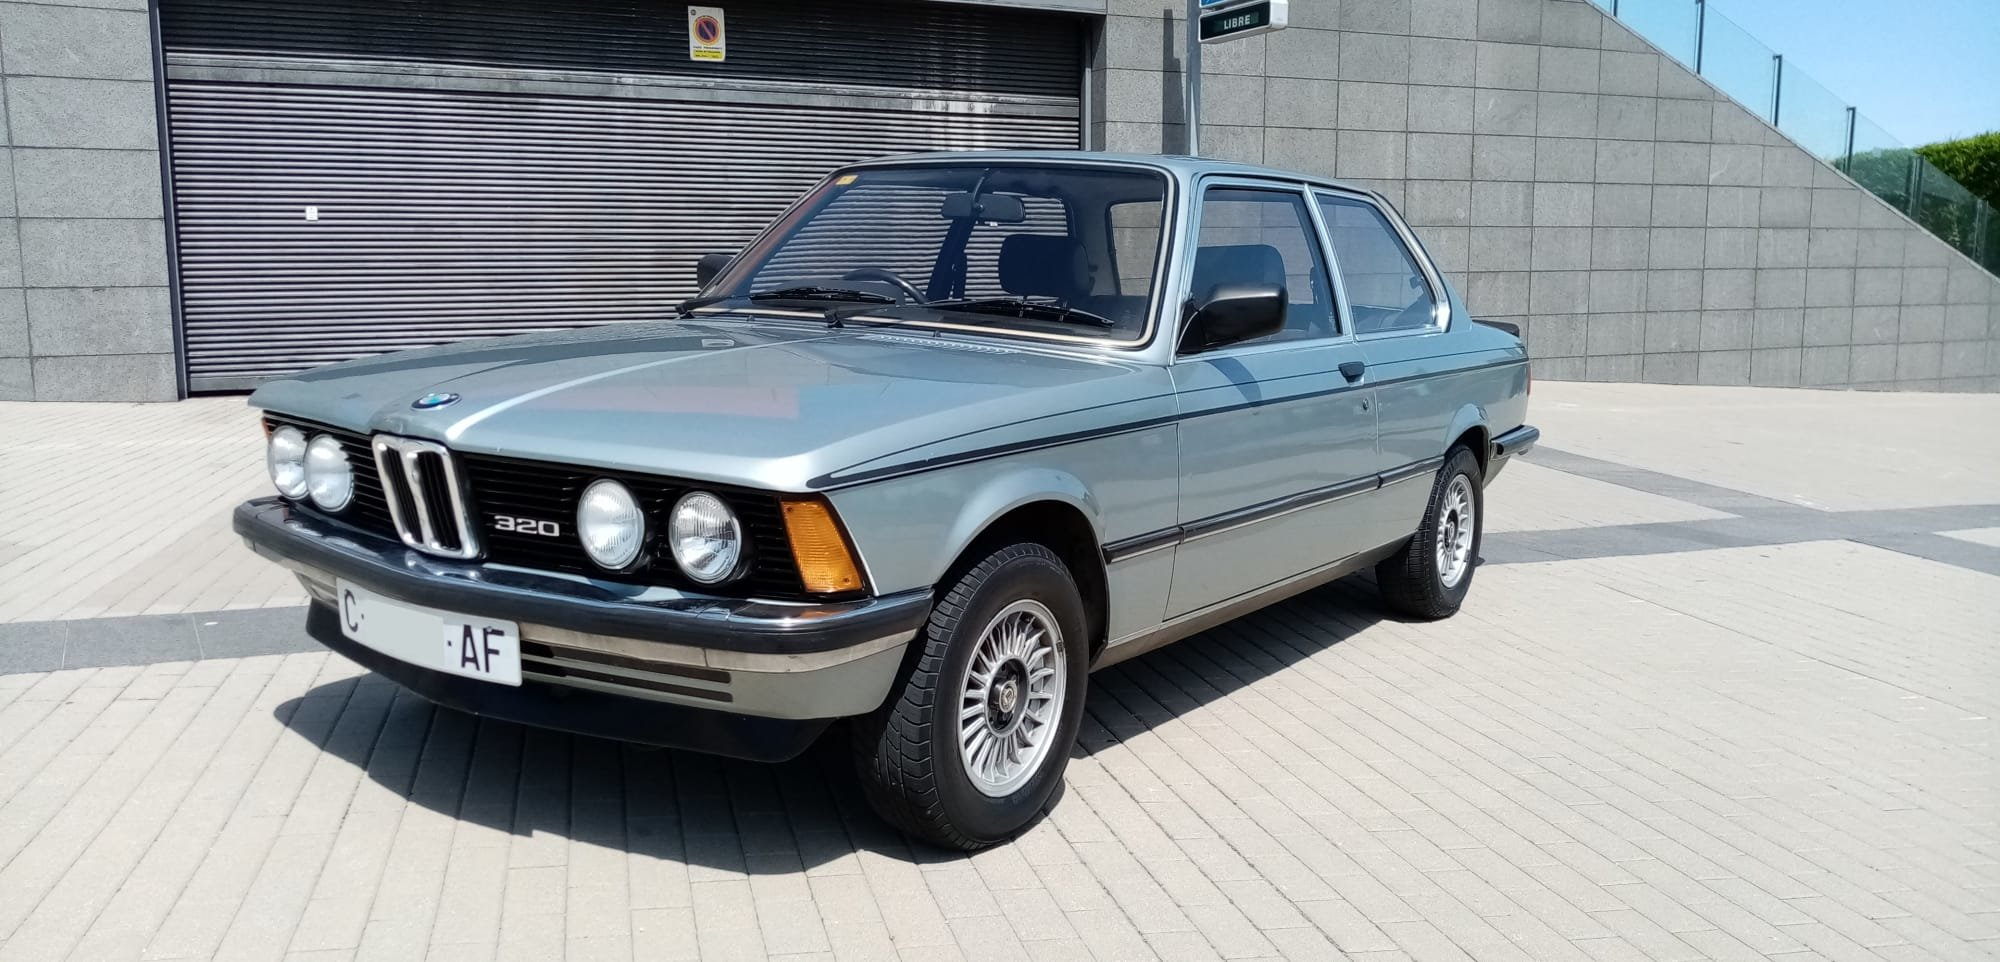 1982 BMW 320/6 e21 AUTO. 2 OWNERS. RHD. PRESERVED  For Sale (picture 1 of 6)